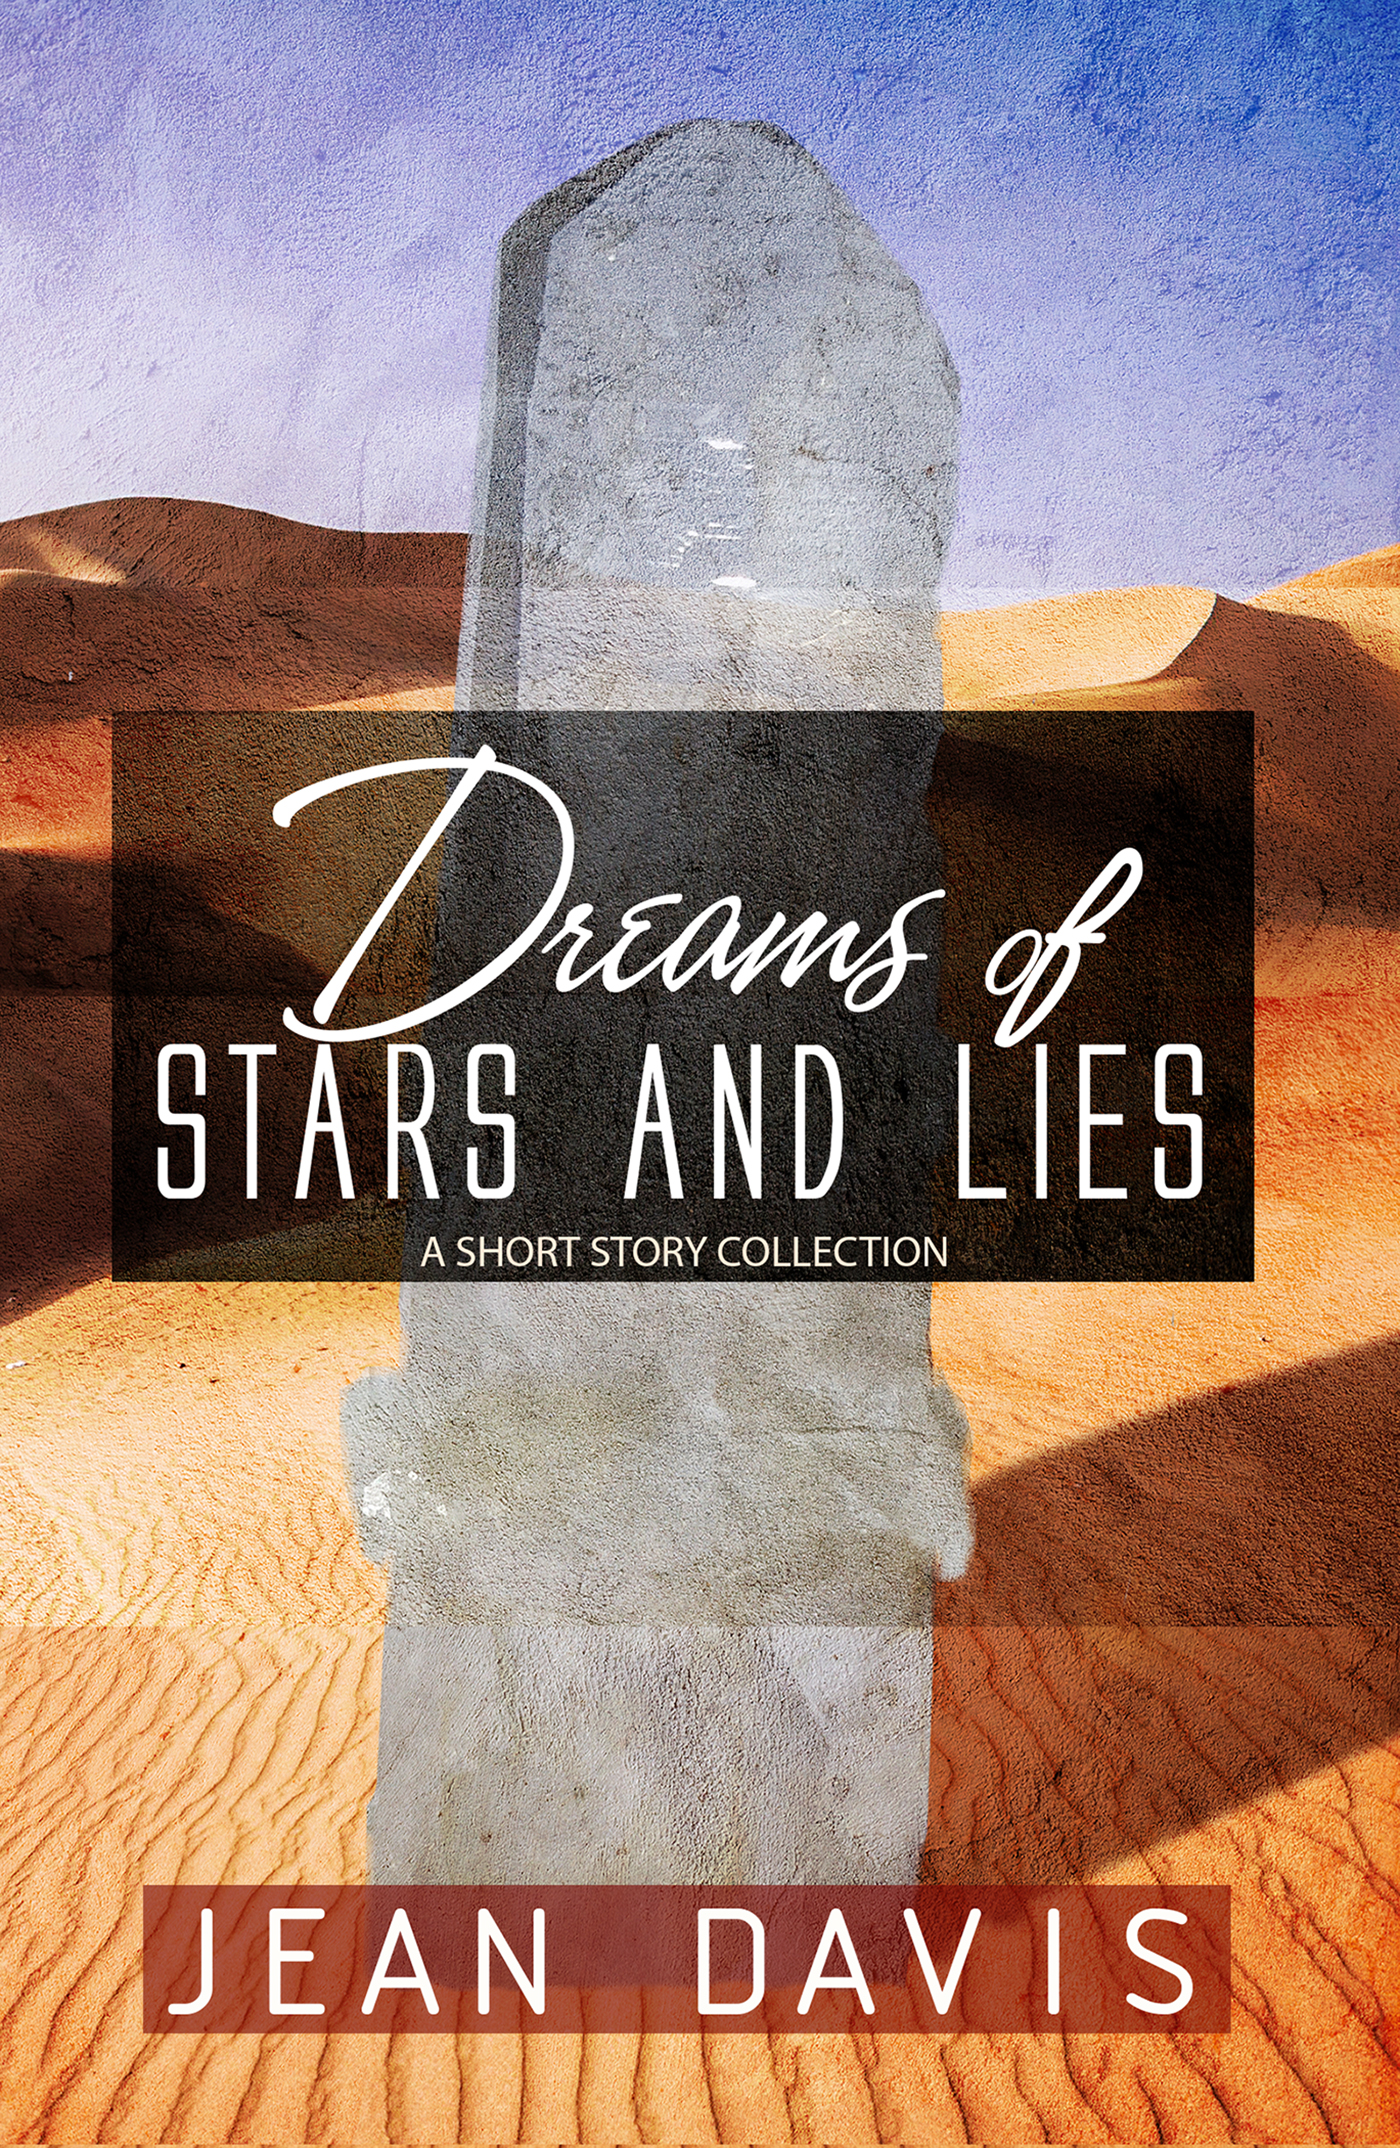 #MotownWriters New book release: Dreams of Stars and Lies is a collection of five short science fiction stories via @JeanDDavis